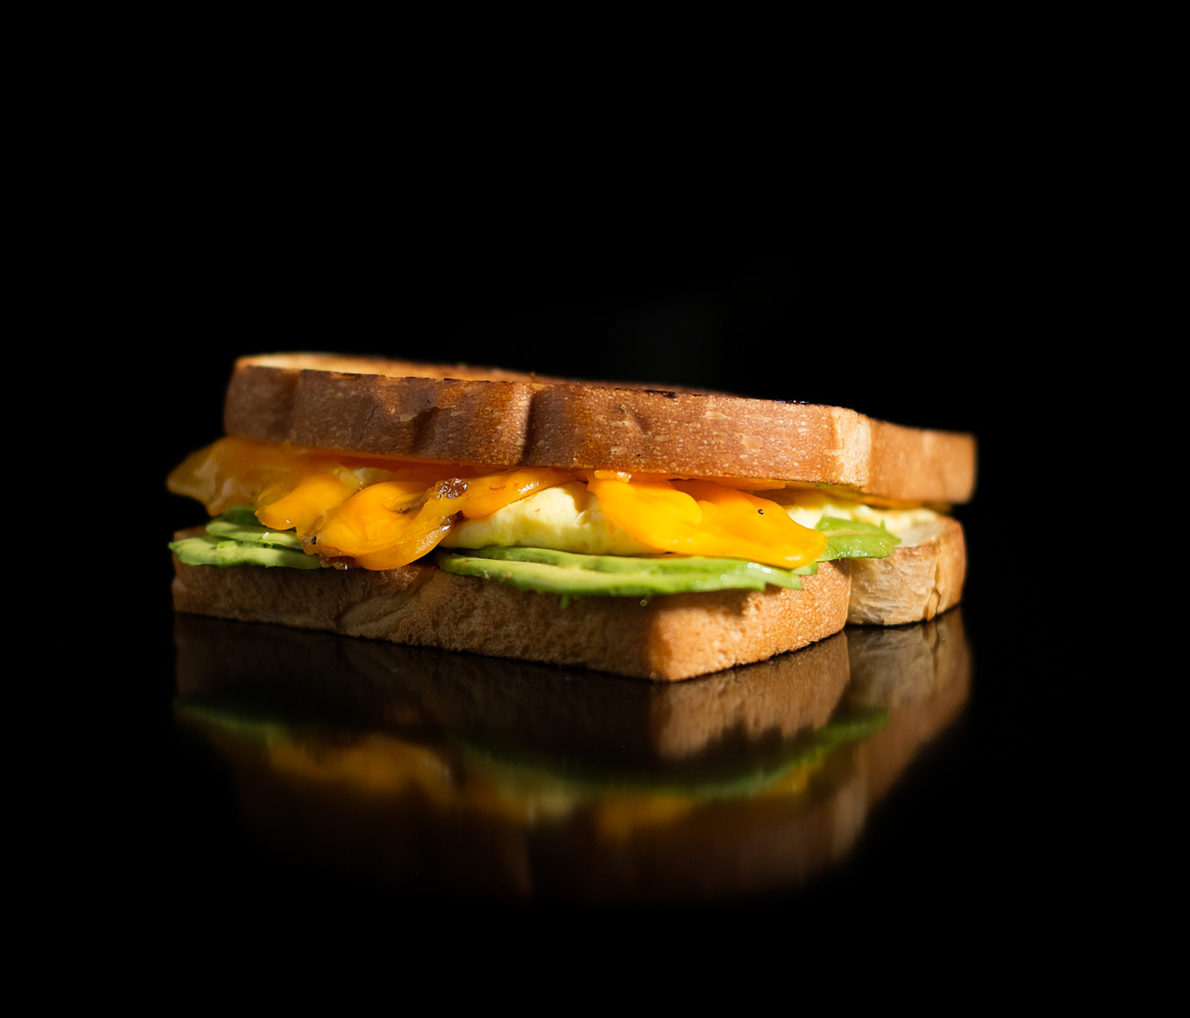 The Avocado Egg & Cheese